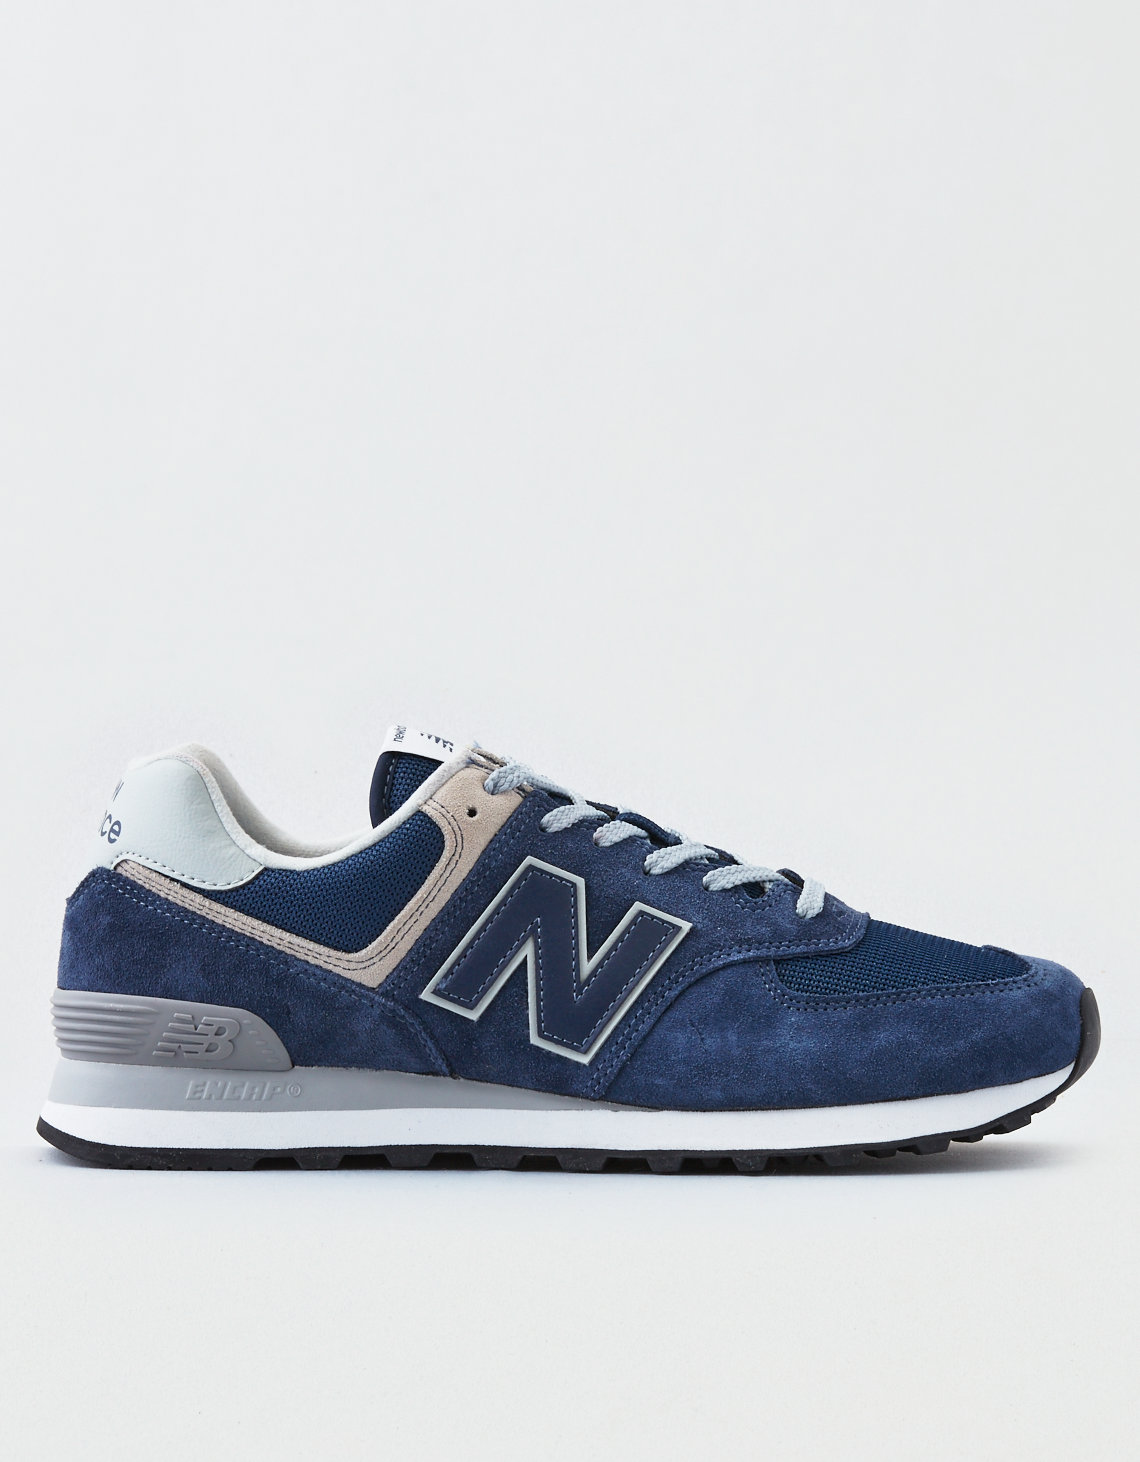 finest selection 127f5 b98ec New Balance 574 Sneaker. Placeholder image. Product Image